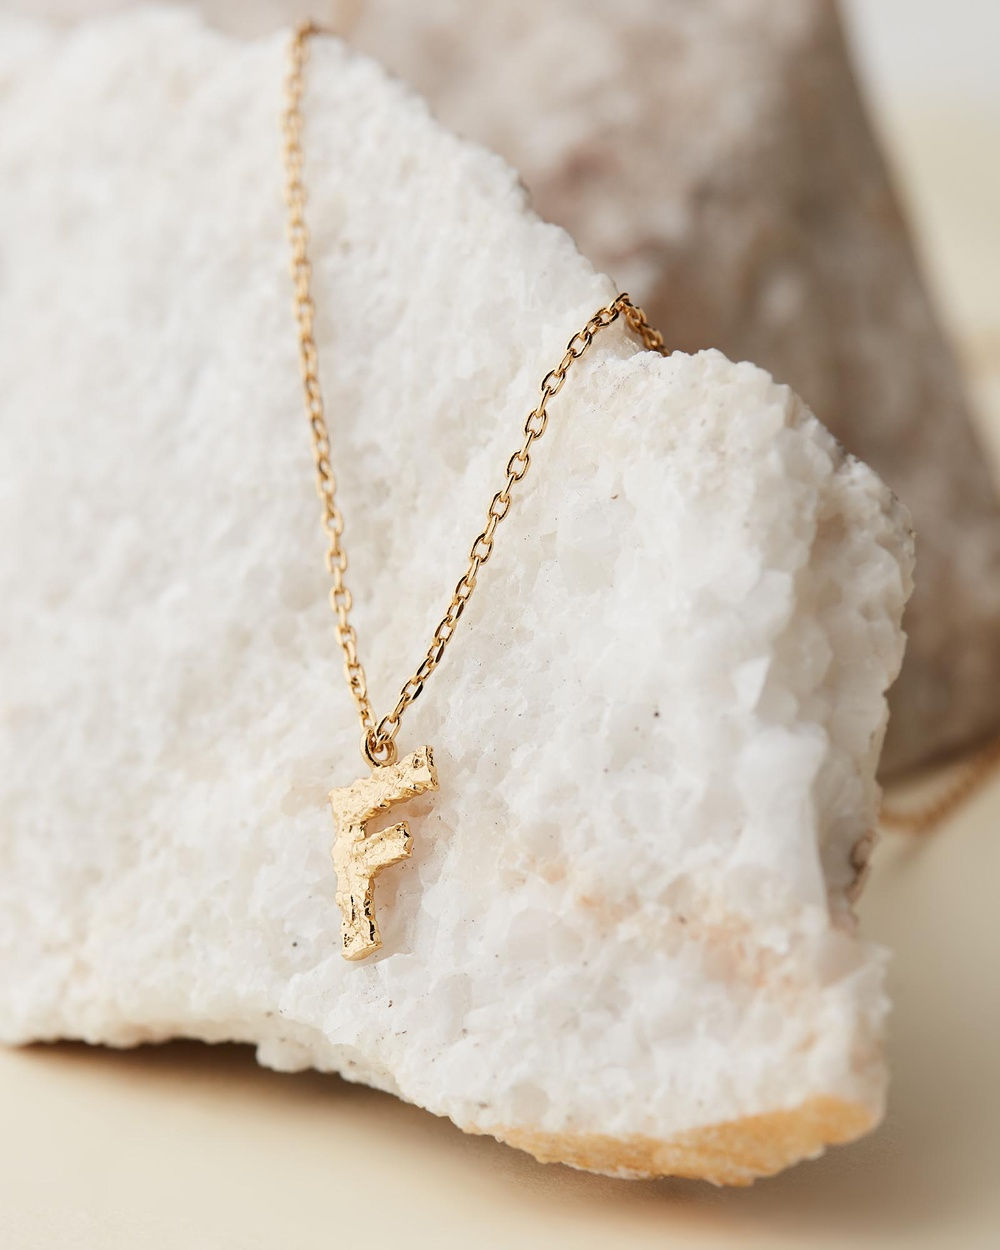 Amber Sceats Jadé Tunchy x Petite Letter Necklace F Jewellery Gold